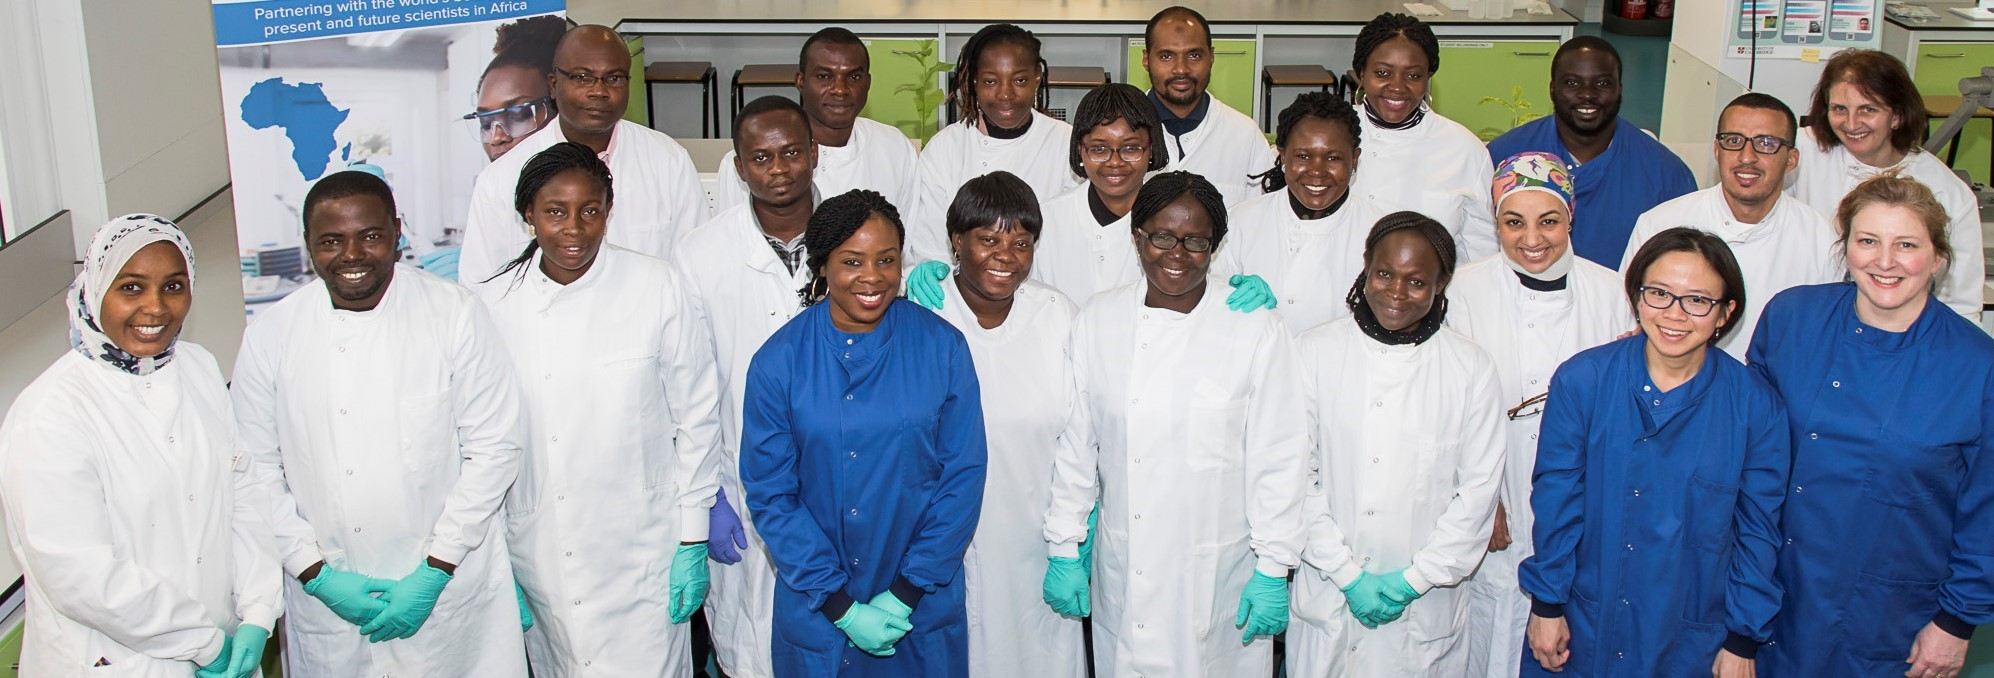 Carol, Colleagues and Trainees from Africa_Cropped